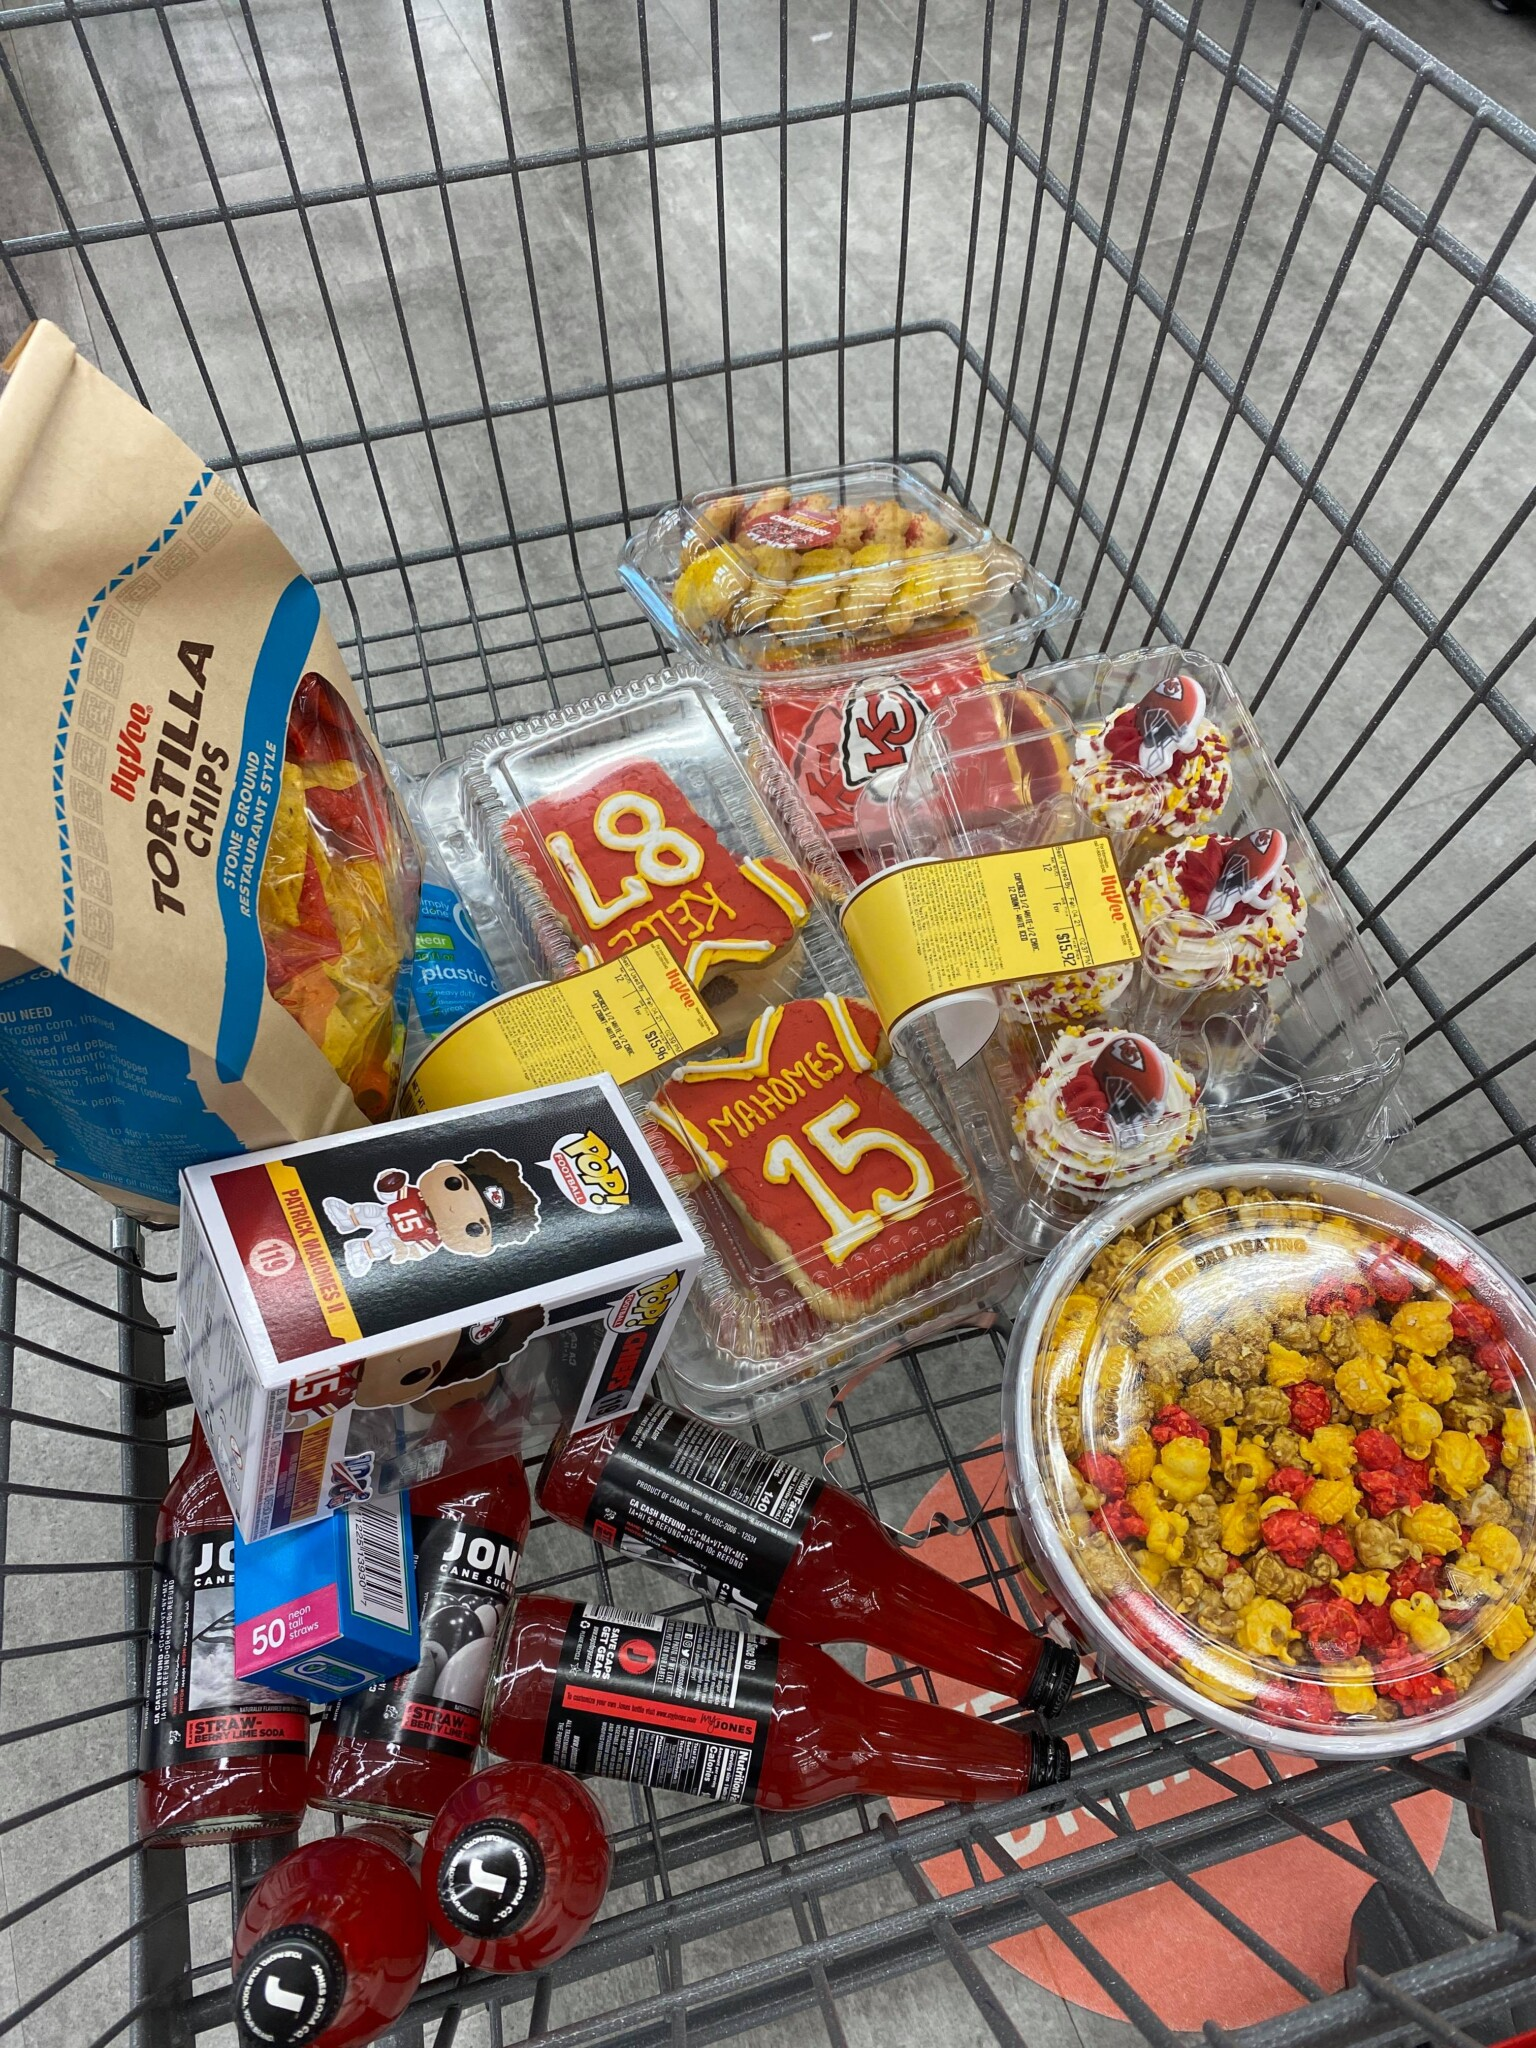 Hyvee shopping cart with desserts